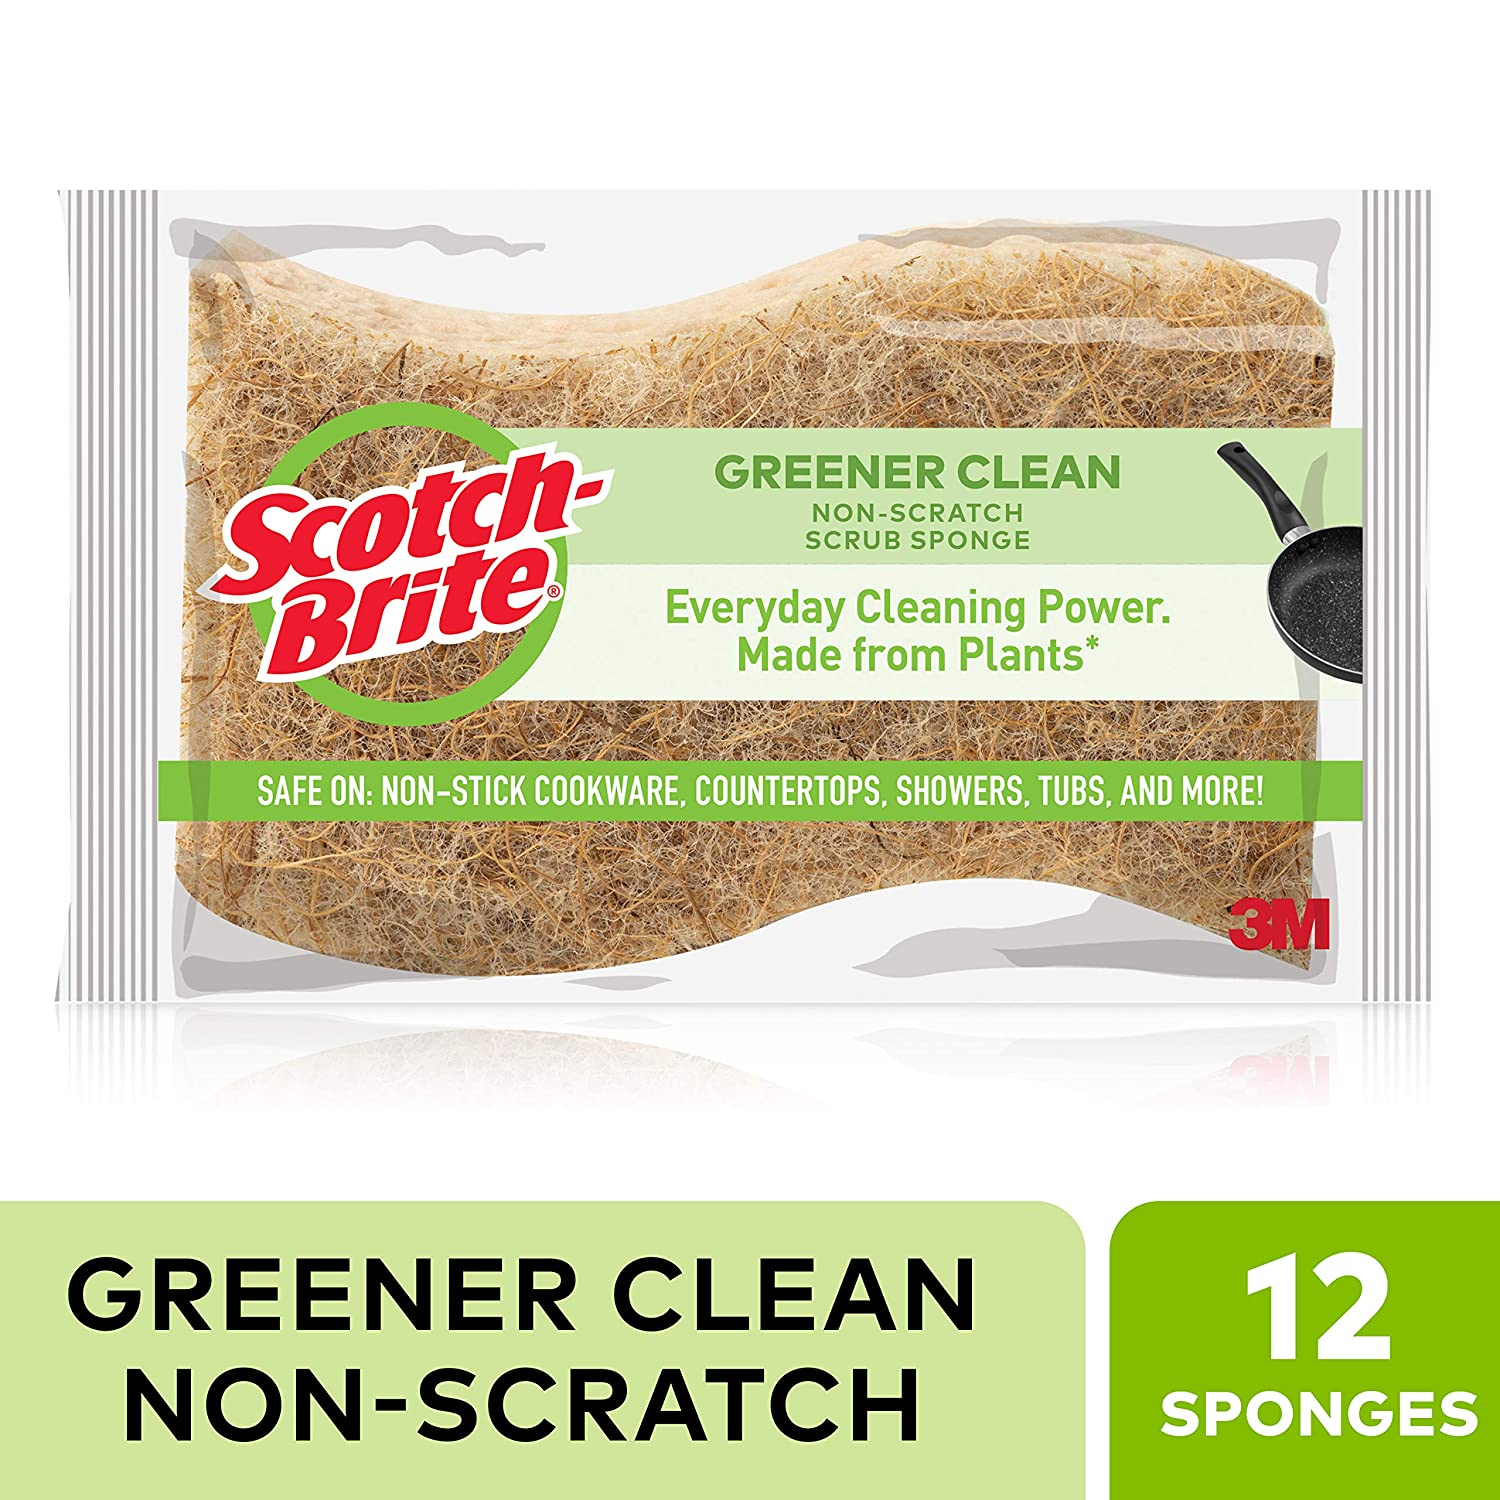 Scotch-Brite Greener Clean Natural Fiber Non-Scratch Scrub Sponge, Everyday Cleaning Power. Made from Plants, 12 Scrub Sponges